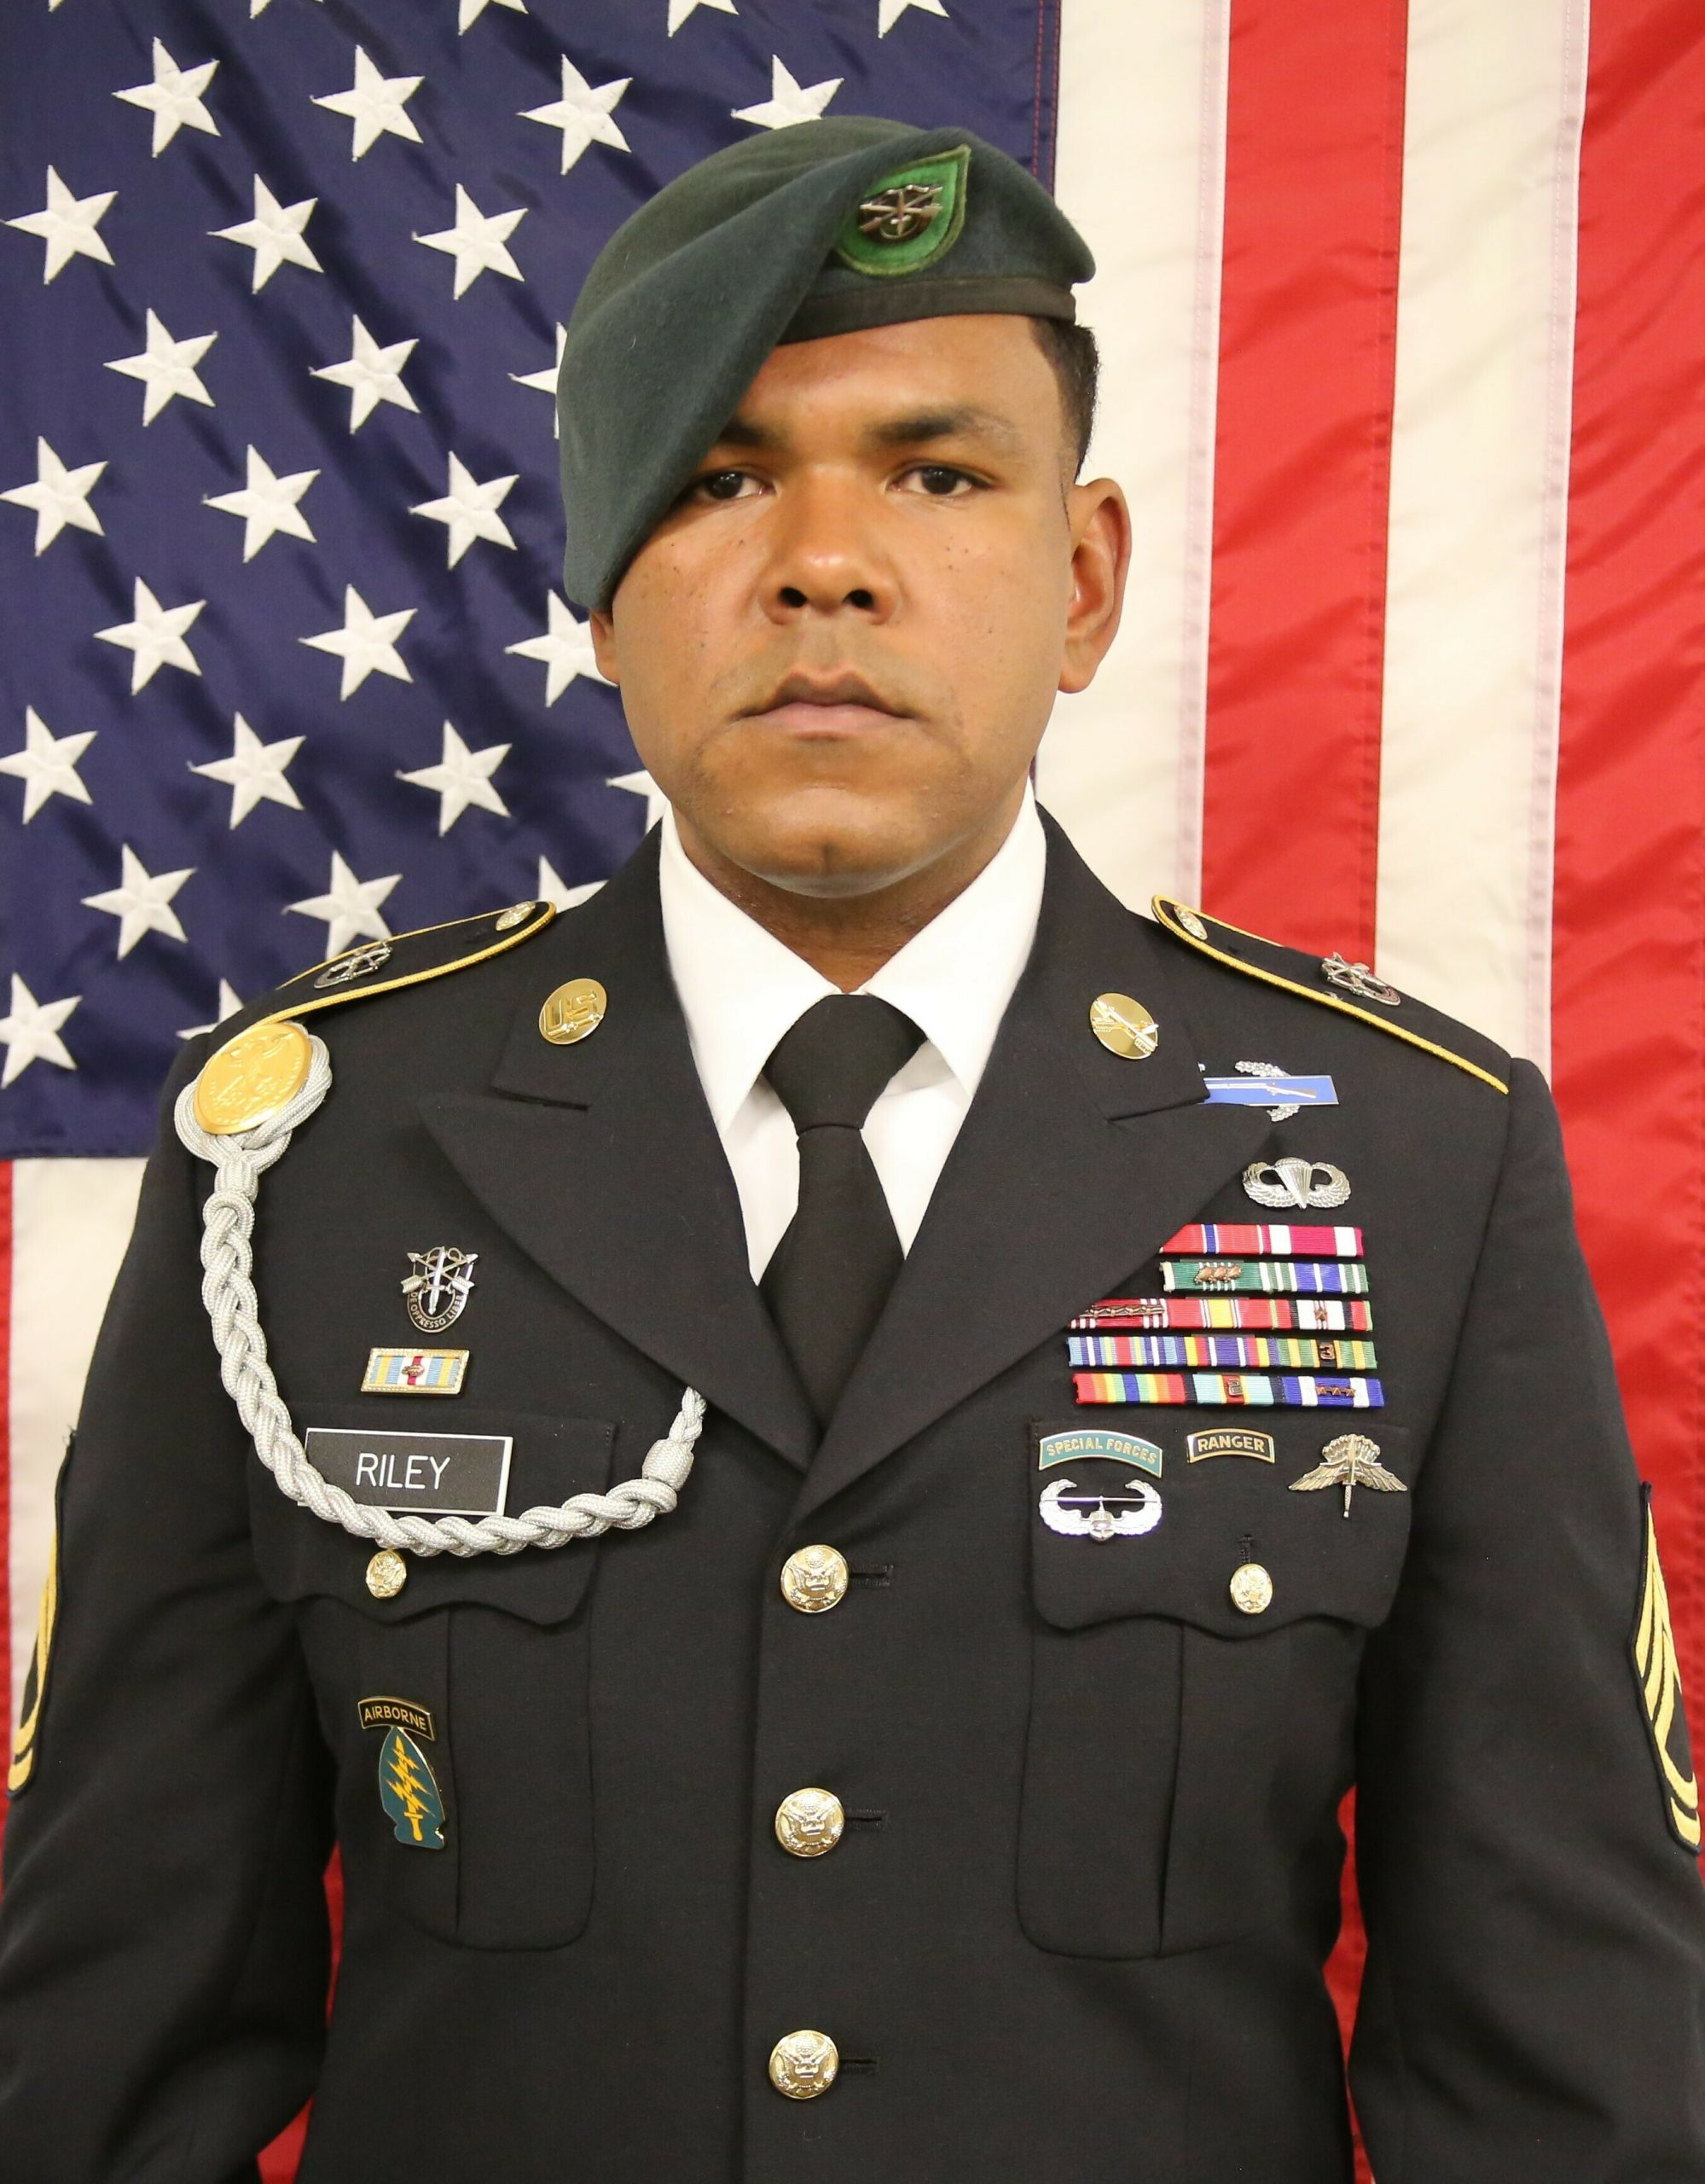 Master Sgt. Micheal B. Riley, 32, was killed Tuesday, June 25 by small arms fire while engaged in combat in Uruzgan Province, Afghanistan.